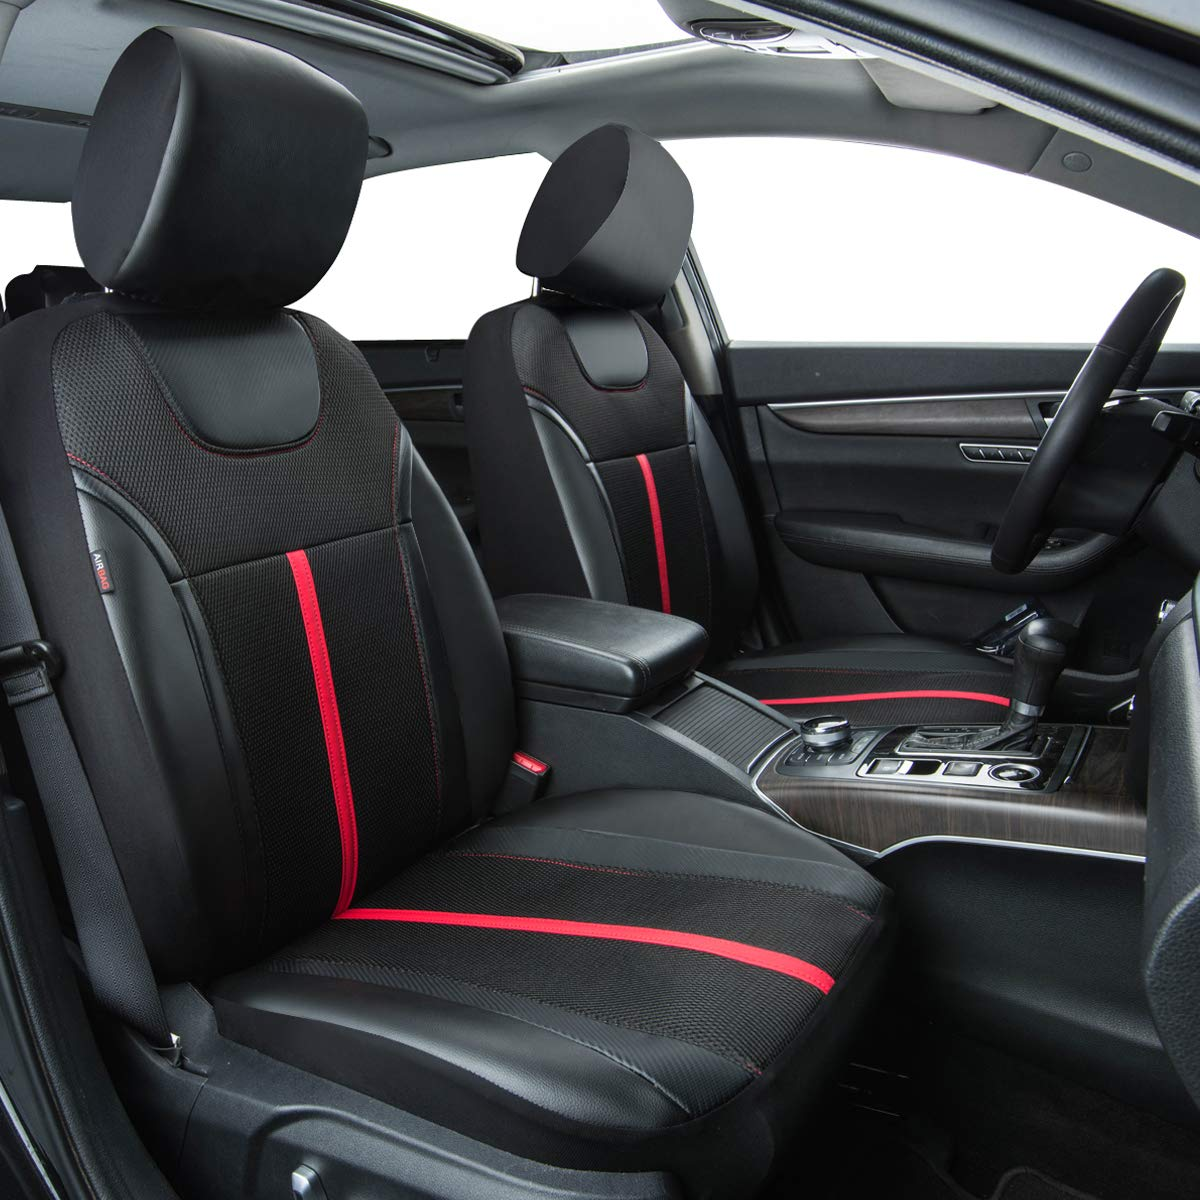 Black and Red CAR PASS Sporty Leather Universal Car Seat Cover with Zipper Design,Fit for Suvs,Vans,Sedans,Trucks,Airbag Compatible